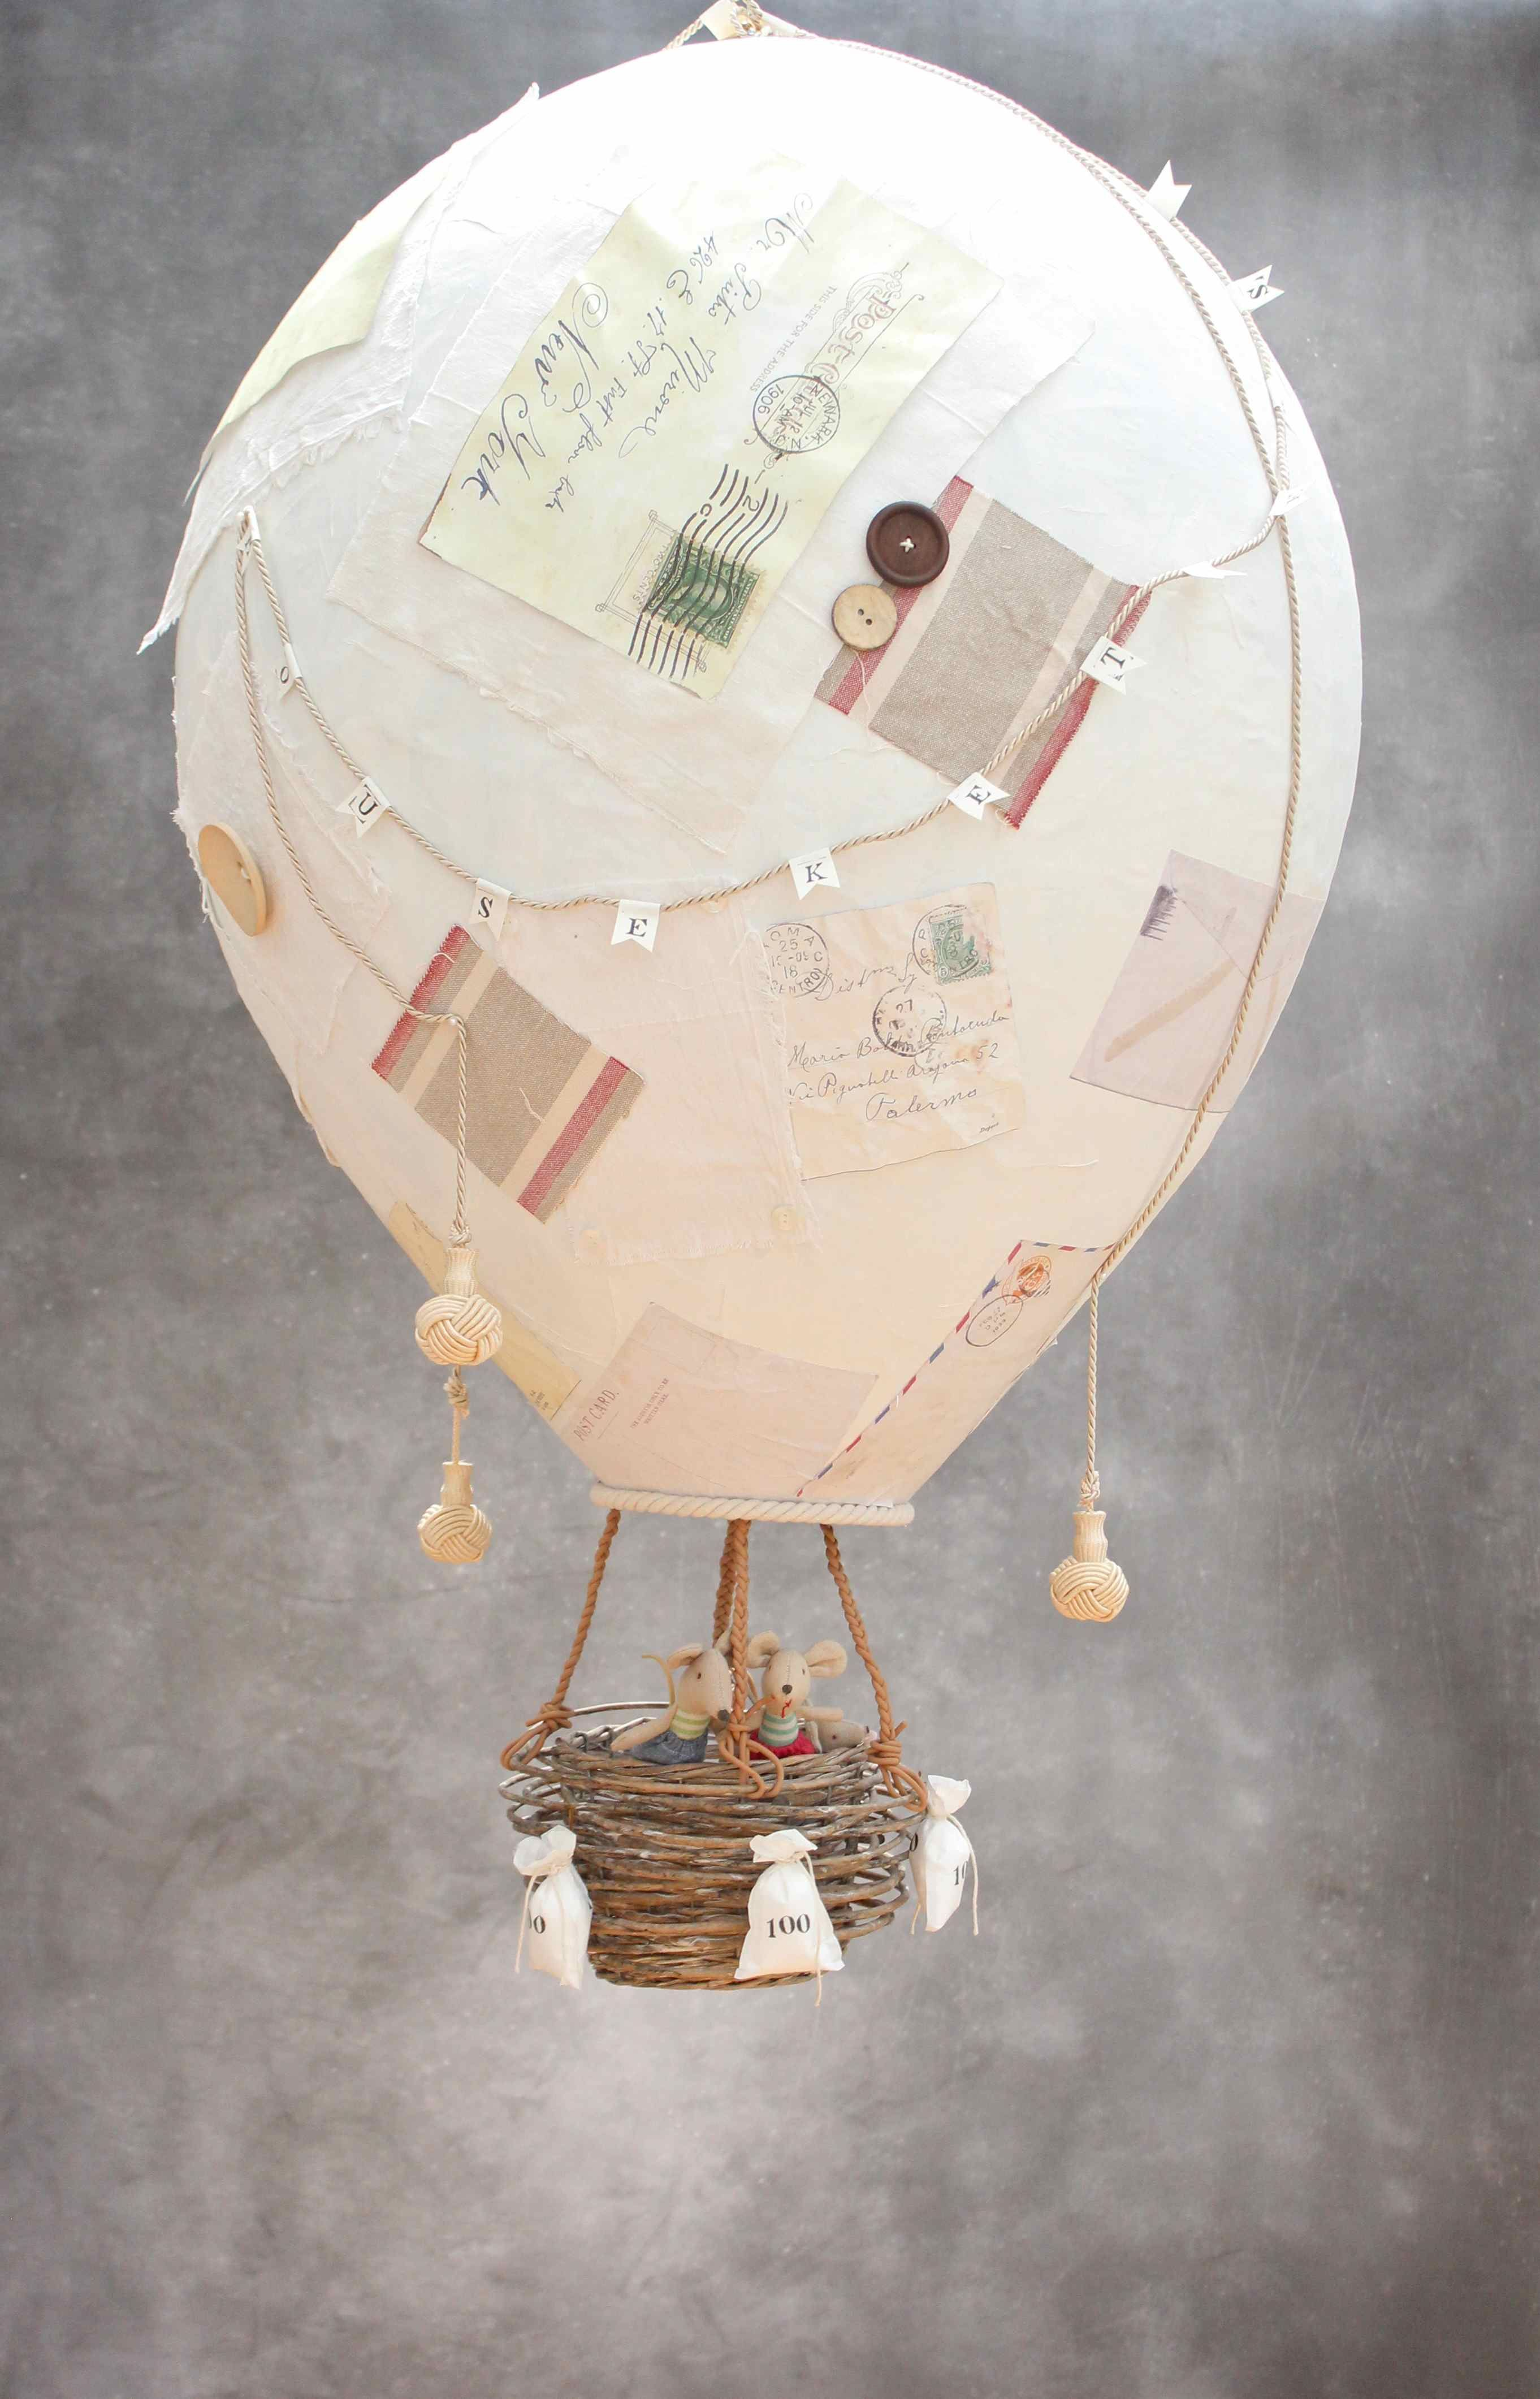 Diy papier mache hot air balloon from www for Papier mache decorations